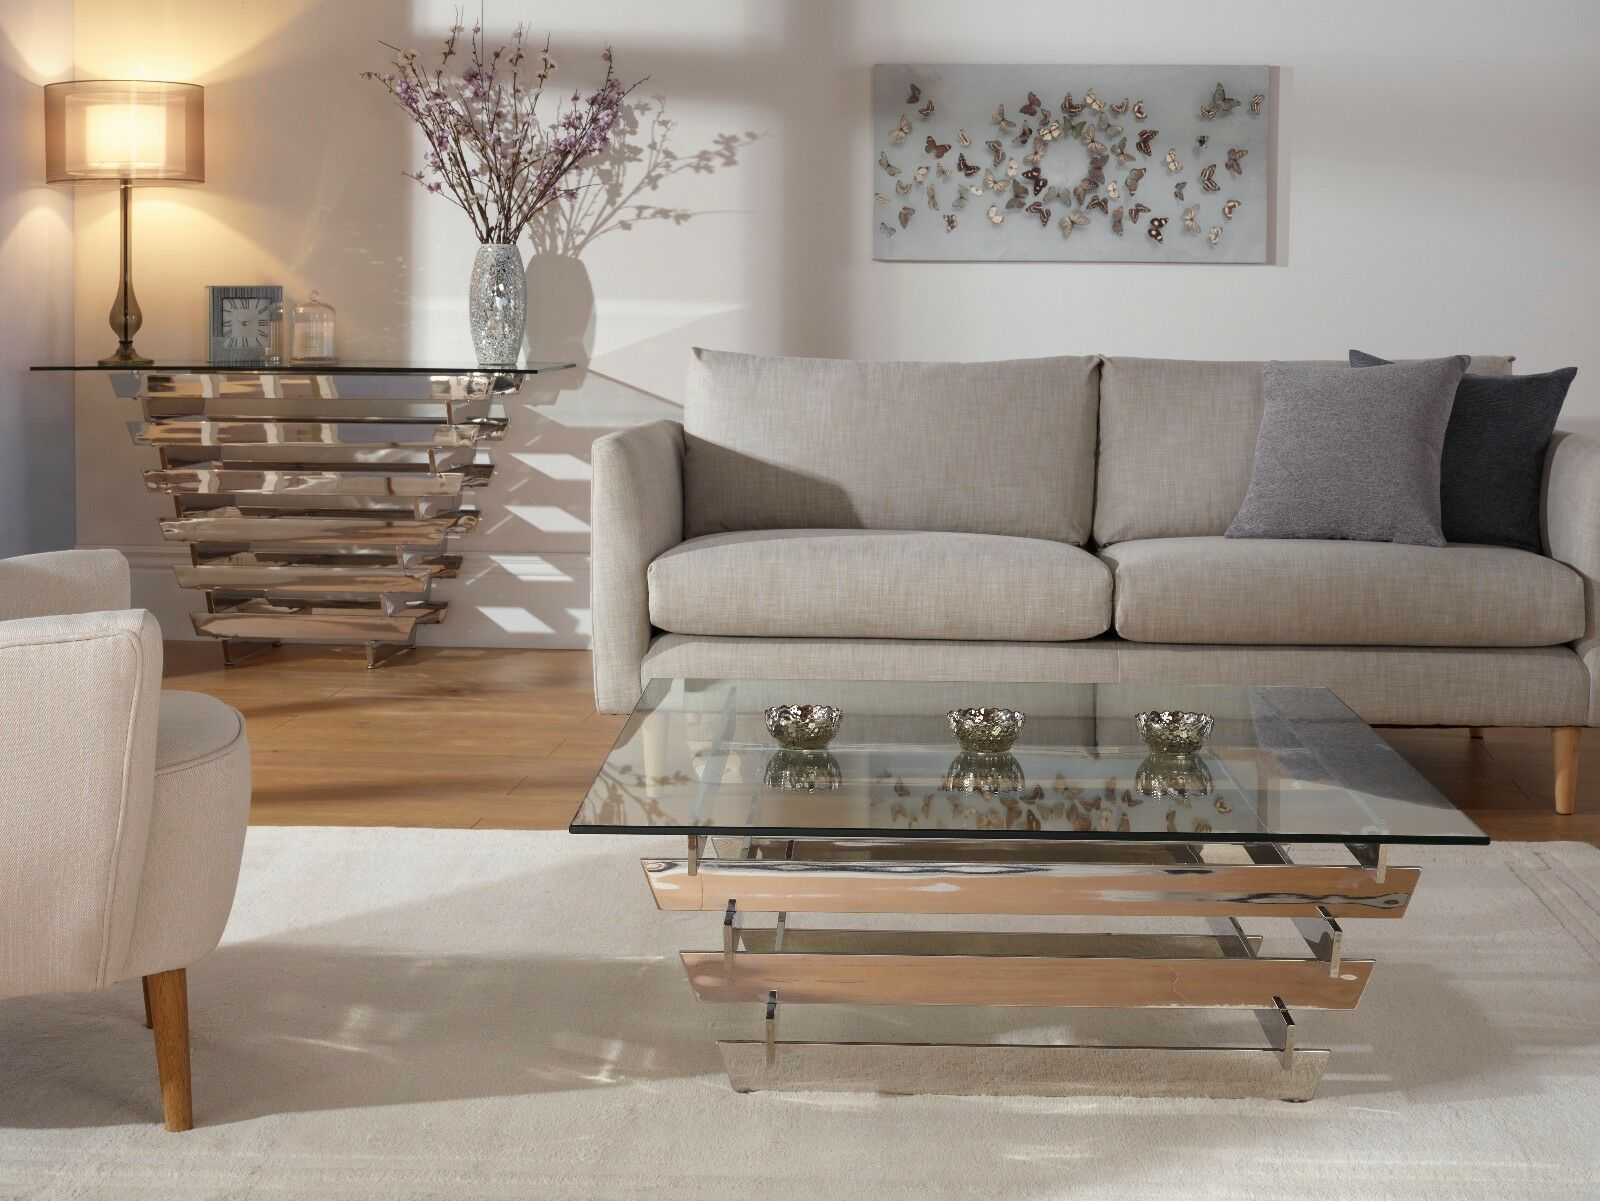 Details About Kyoto Modern Coffee Table Slatted Design In Thick Glass Stainless Steel Frame